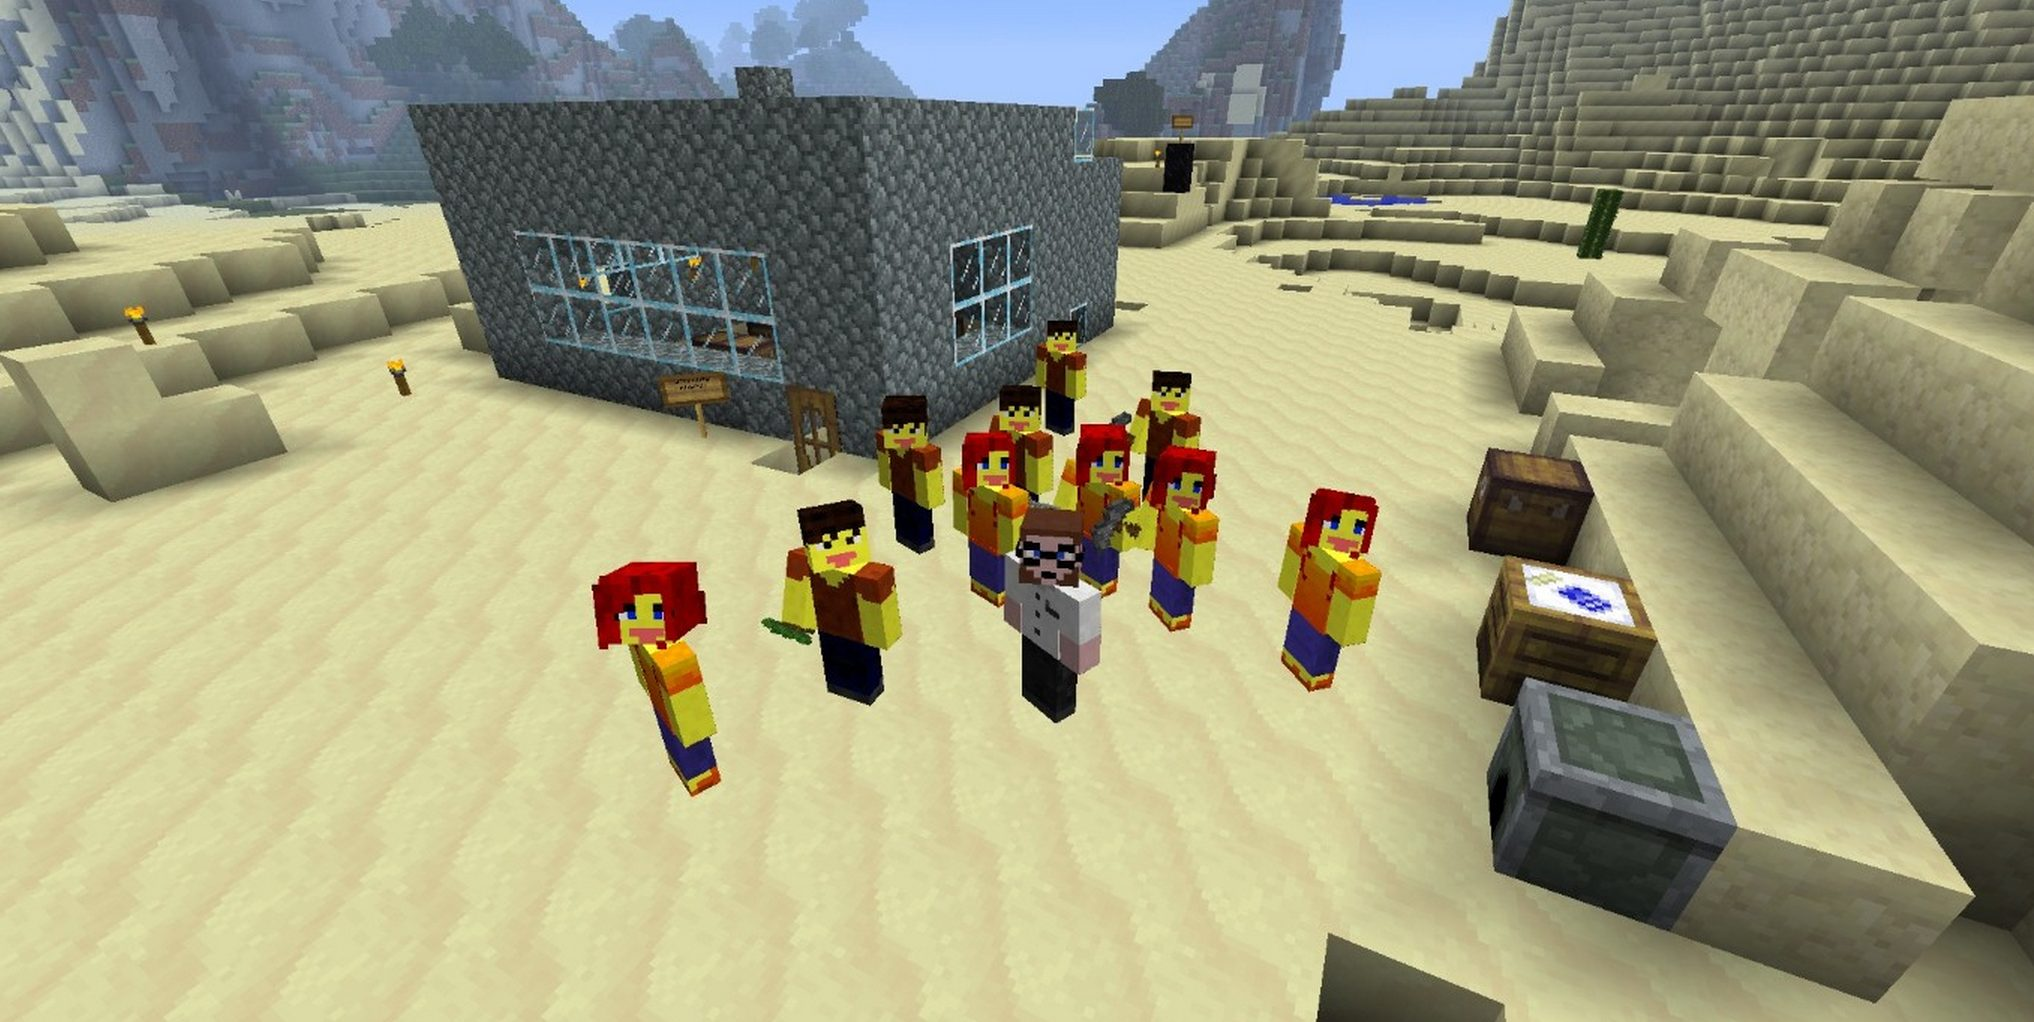 Class Photo in Minecraft.